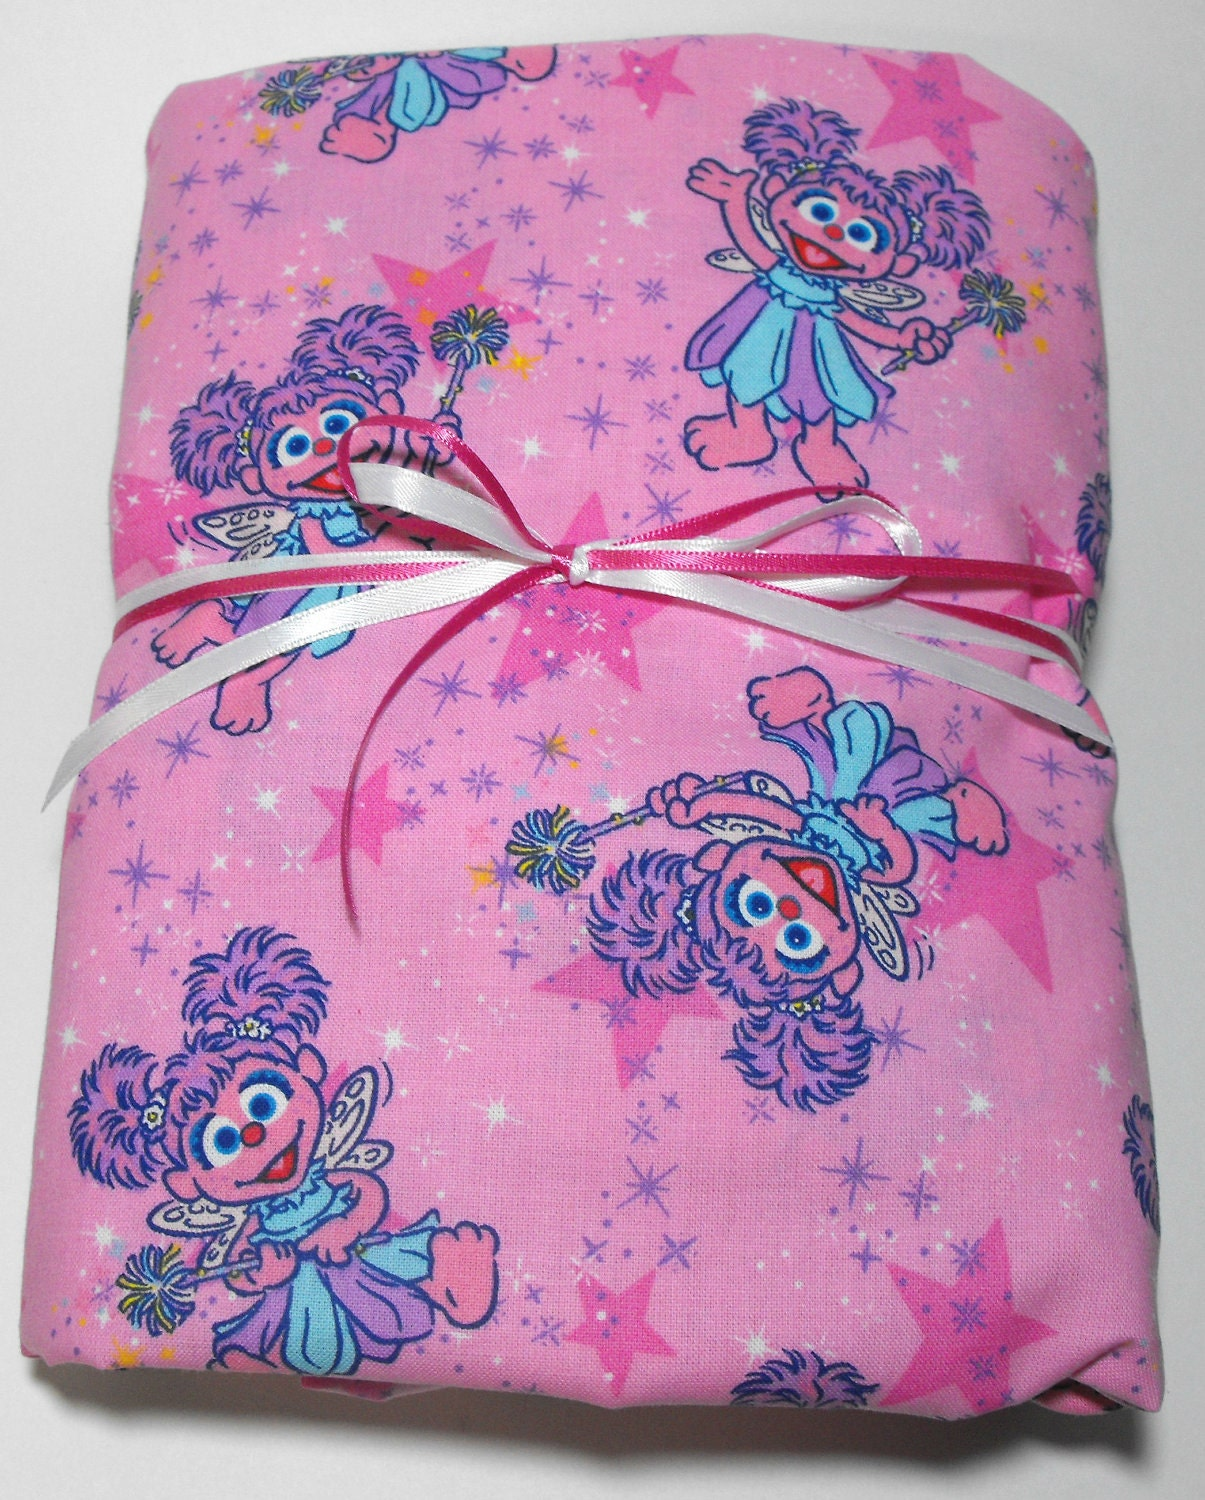 Reserved for R Abby Cadabby Bedding Set